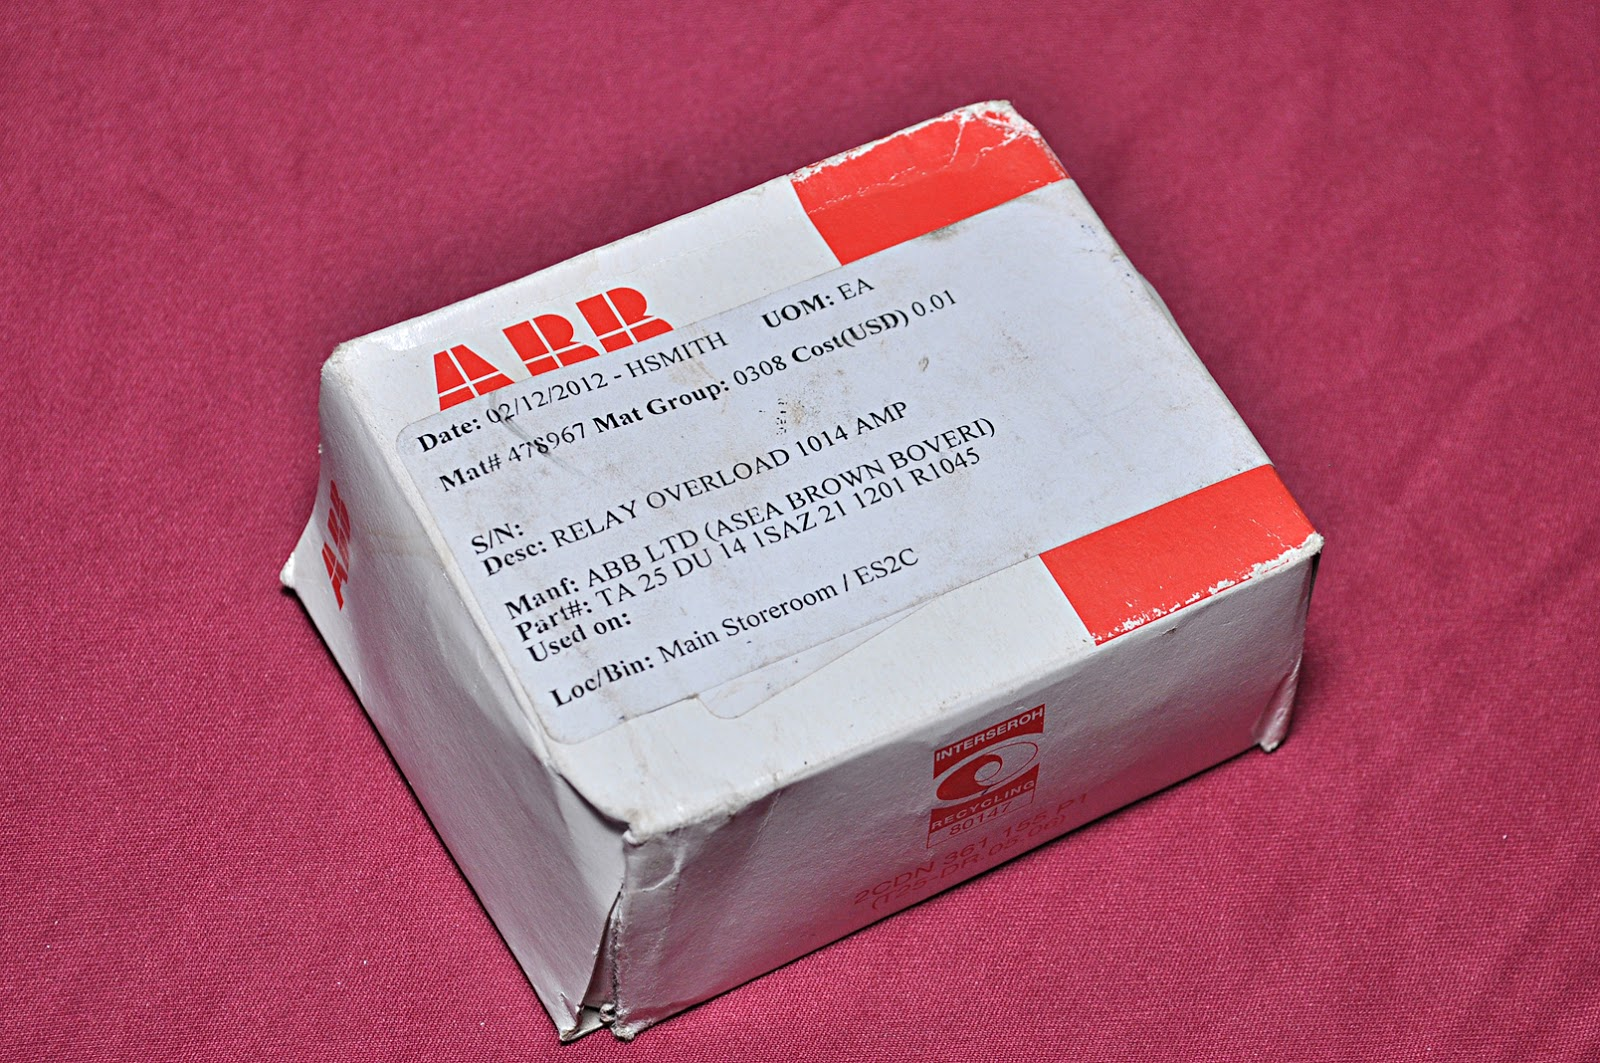 Abb Ta25 Du Thermal Overload Relay Aeliya Marine Tech Pvt Ltd Solid State Condition New 1 Pcs Ref 2757